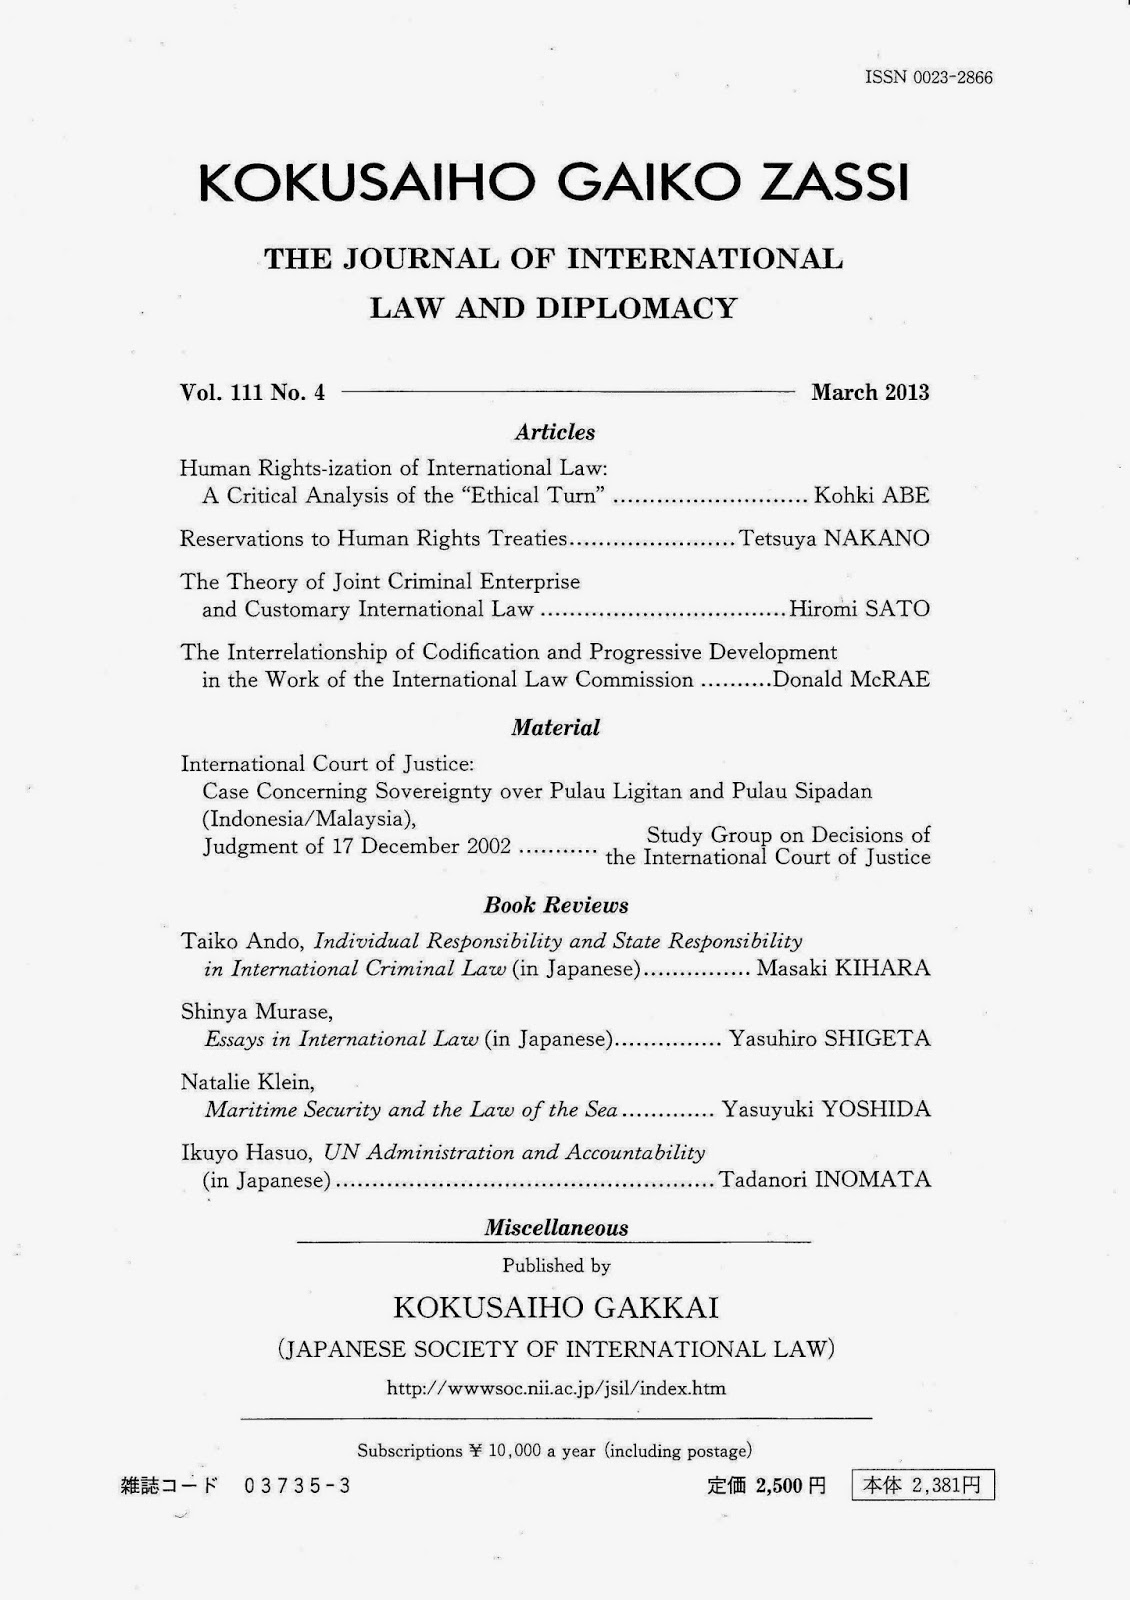 international law reporter  new issue kokusaih333 gaik333 zasshi journal of international law and diplomacy